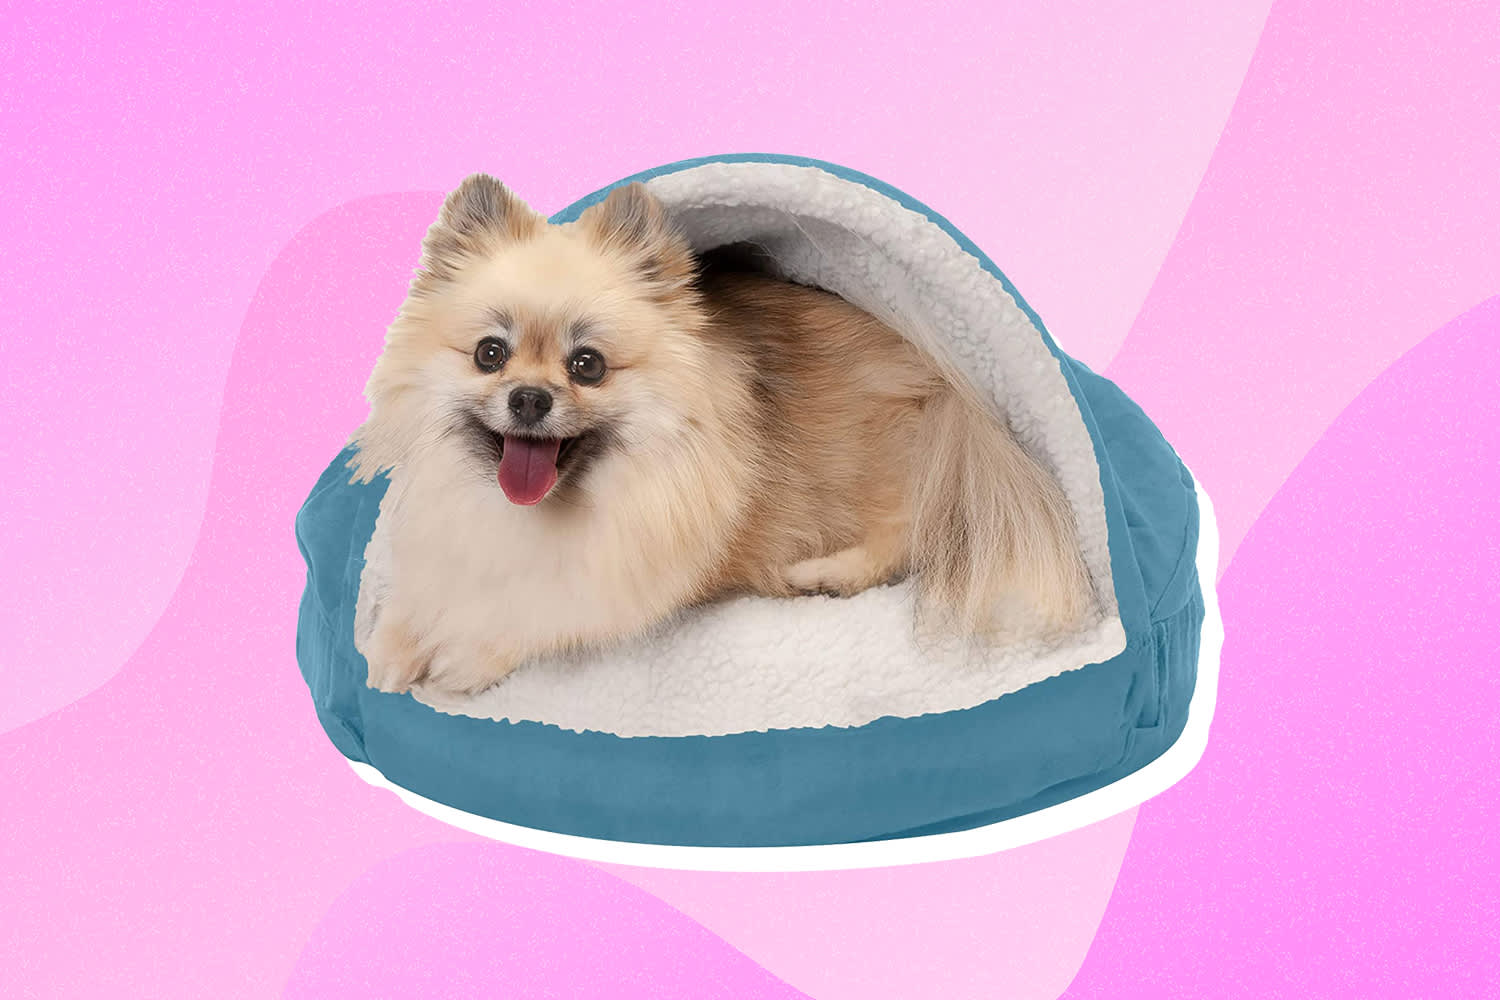 This Dog Bed Has Over 20,000 5-Star Reviews and Is Perfect for Pets Who Love to Snuggle